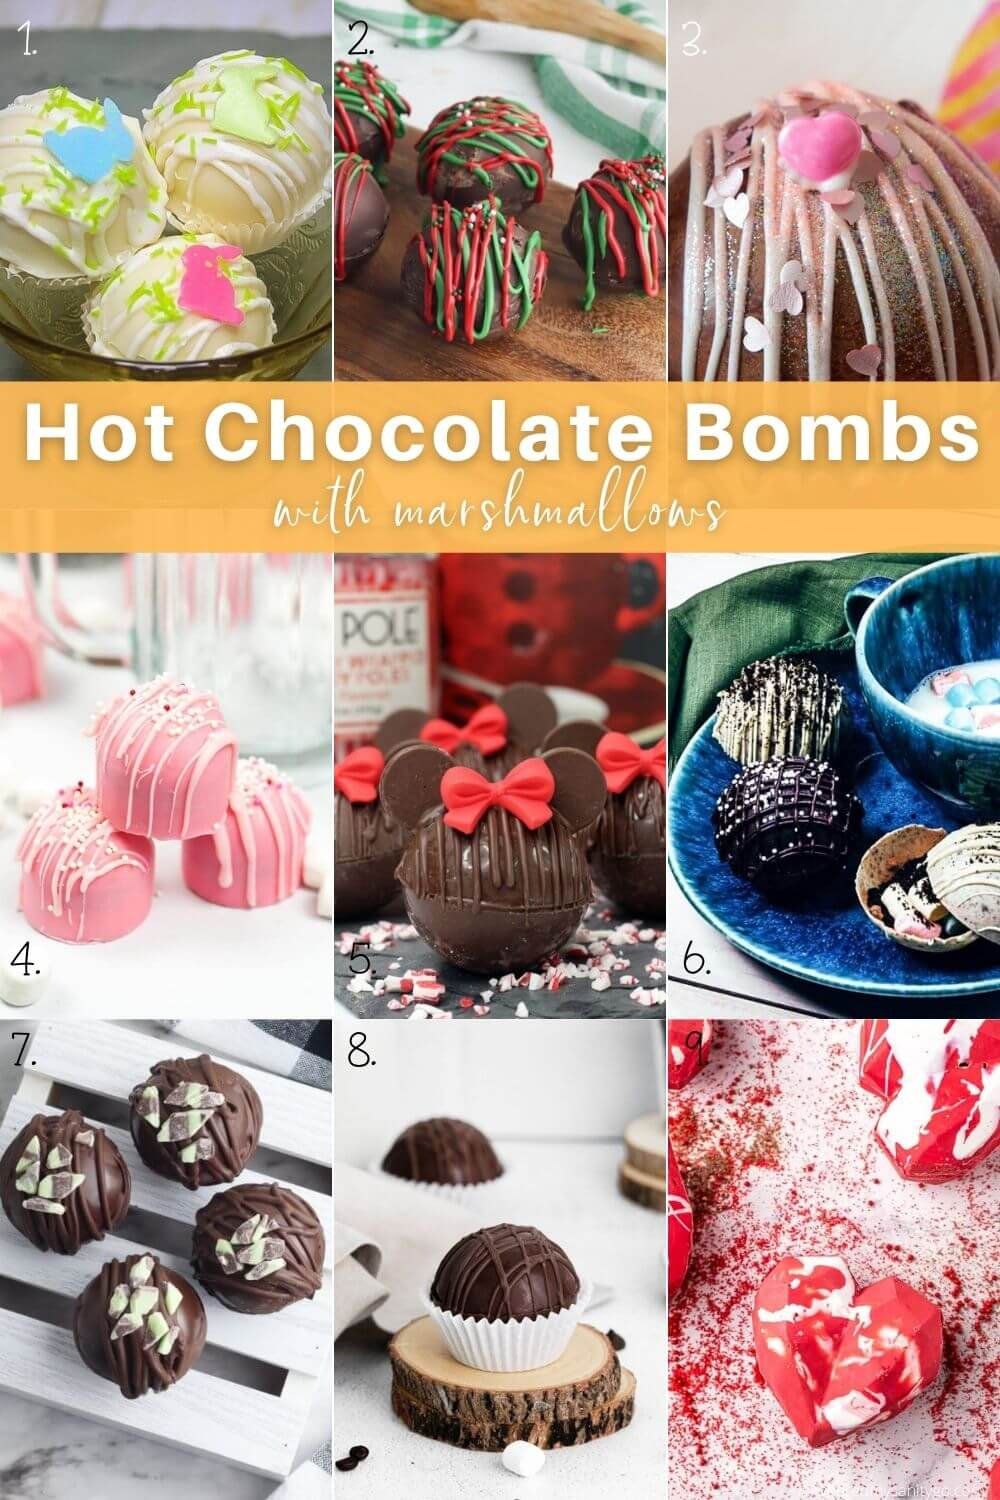 Hot Chocolate Bombs with Marshmallows Roundup